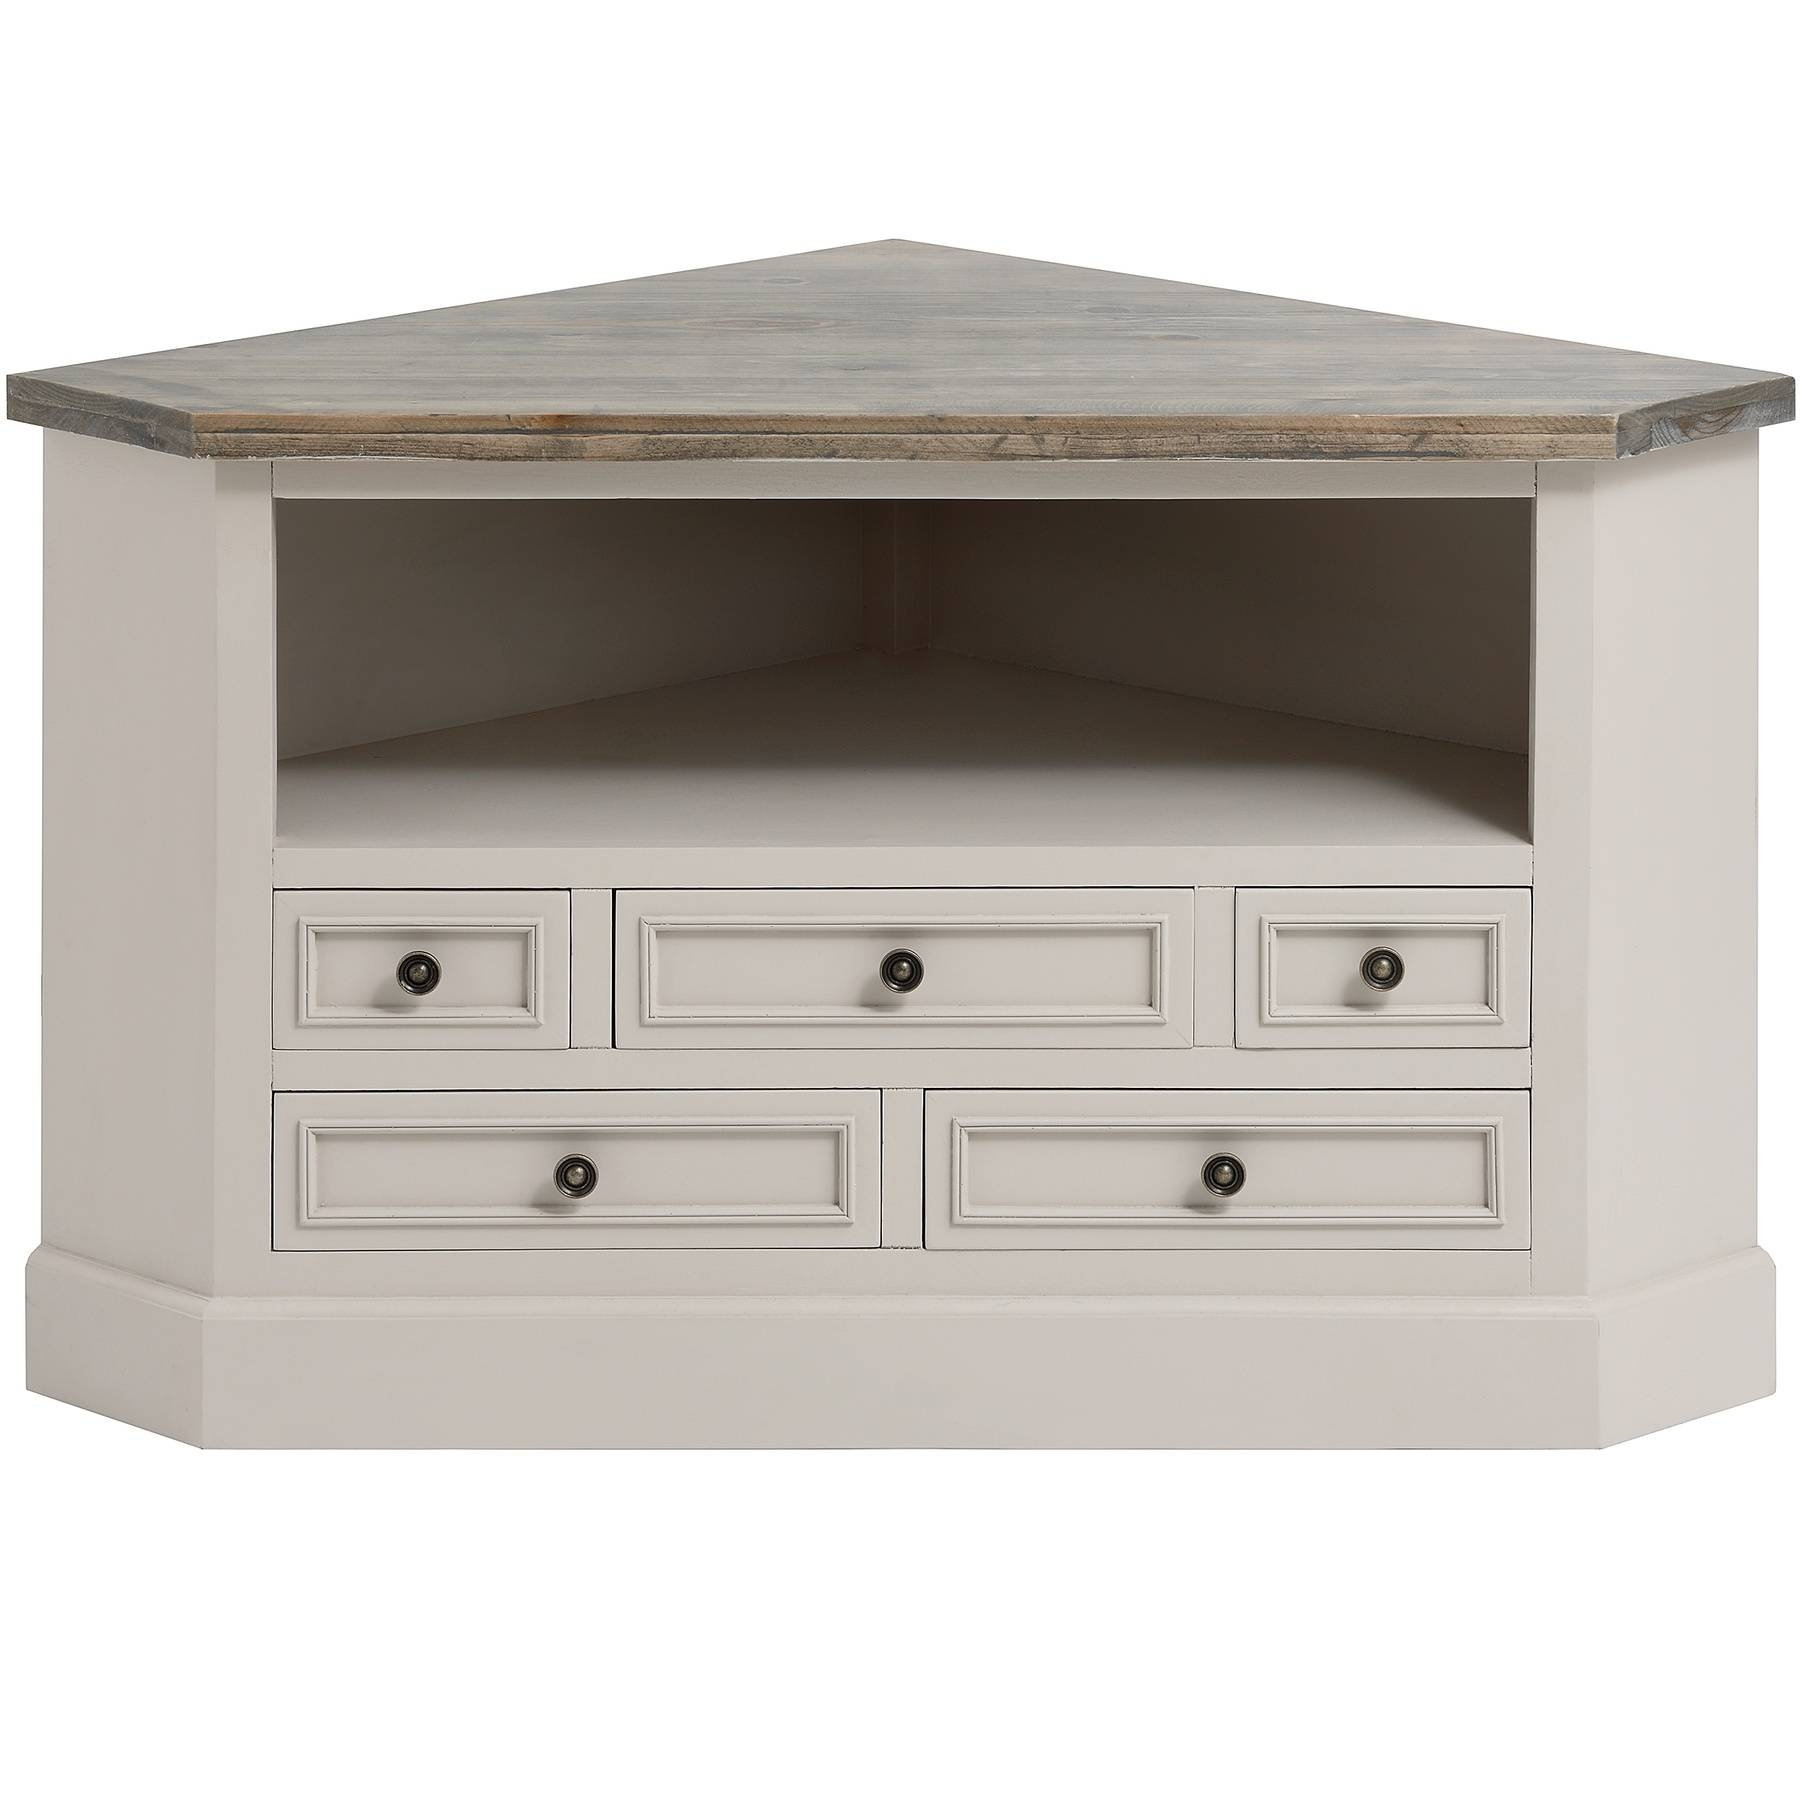 The Studley Collection Corner Tv Unit | From Baytree Interiors In Tv Cabinets Corner Units (View 2 of 15)